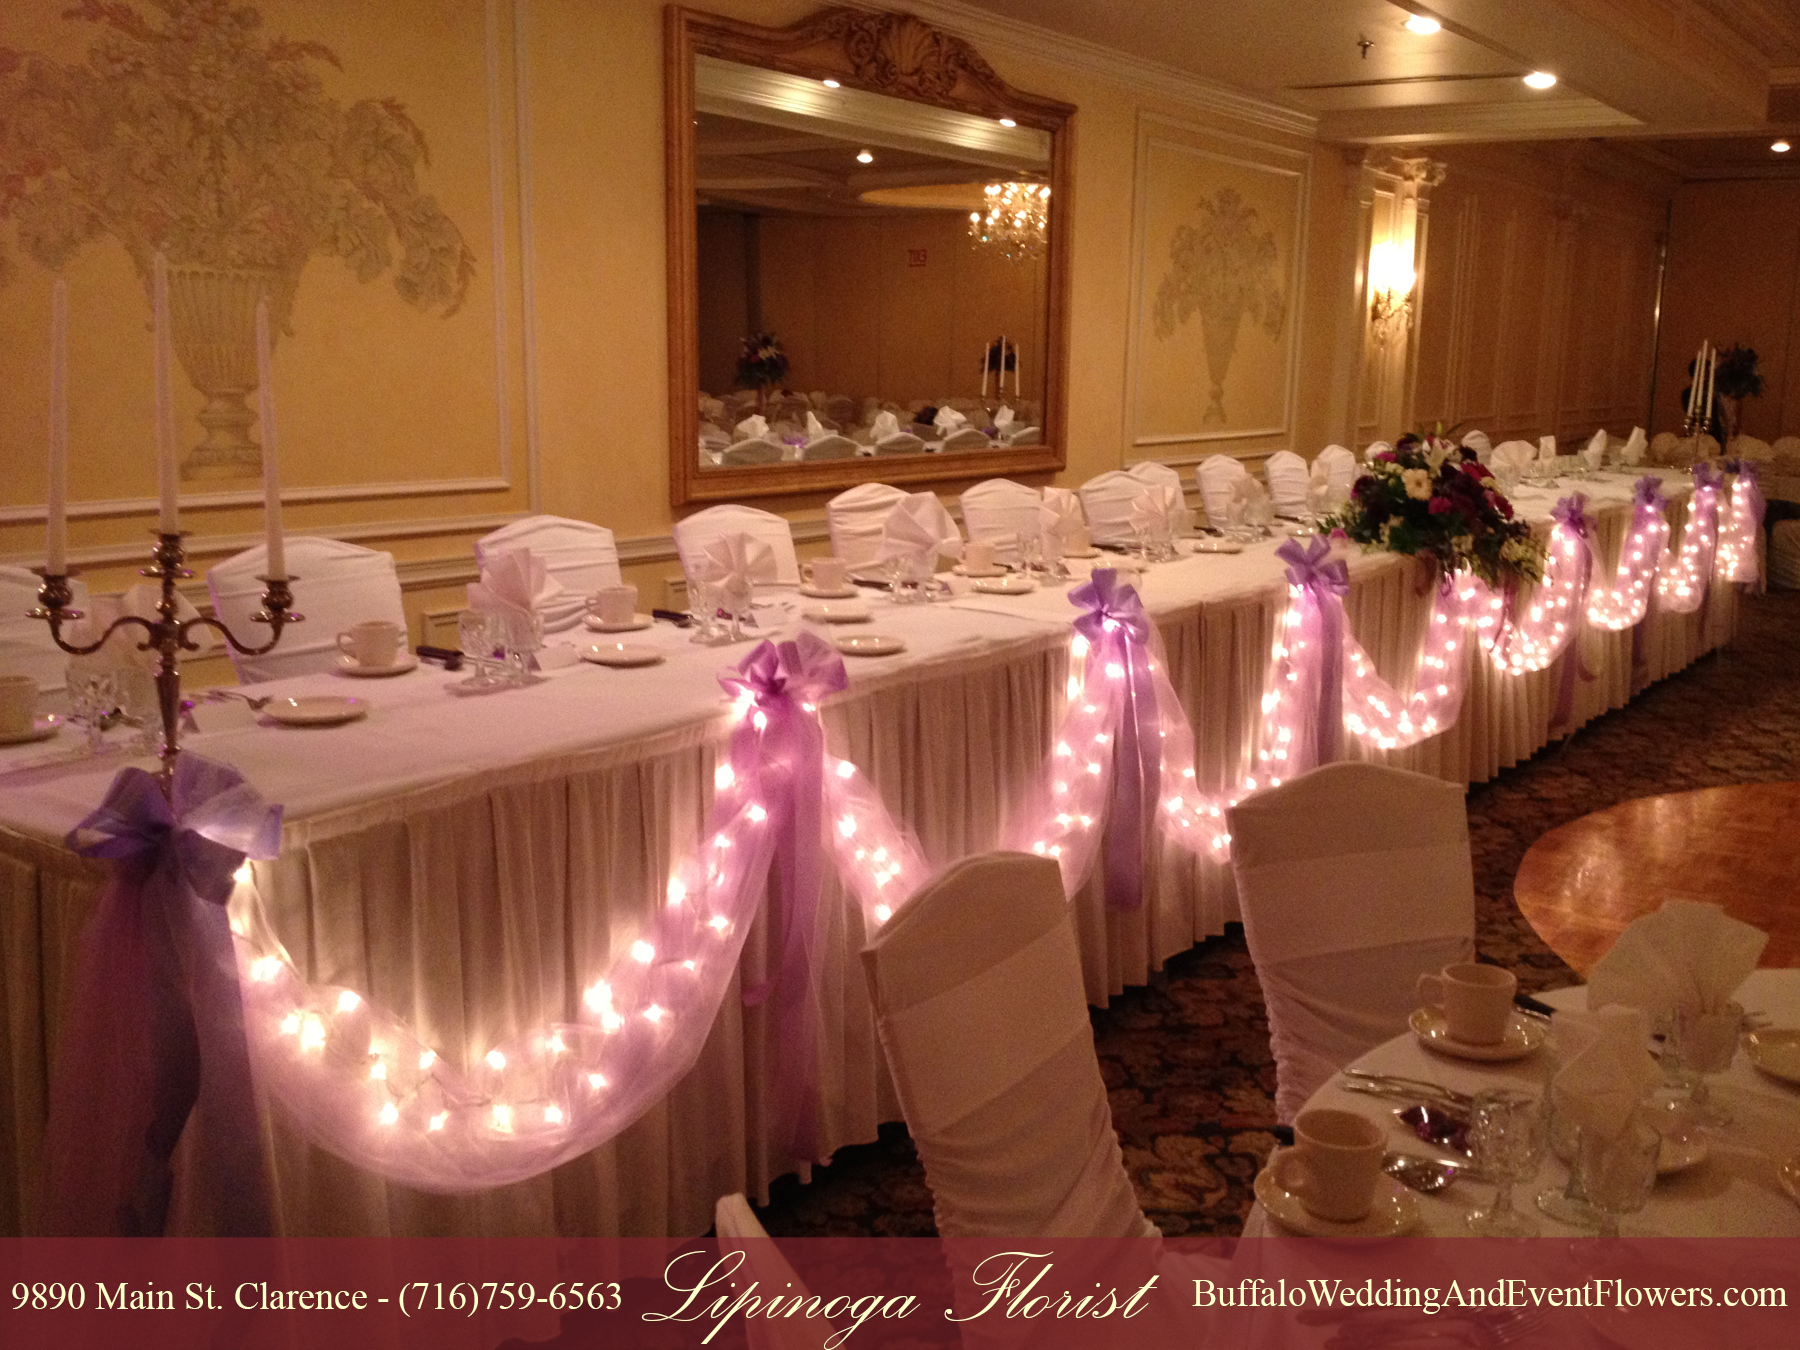 Purple Wedding At Samuel S Grand Manor In Williamsville Ny Buffalo Wedding Amp Event Flowers By